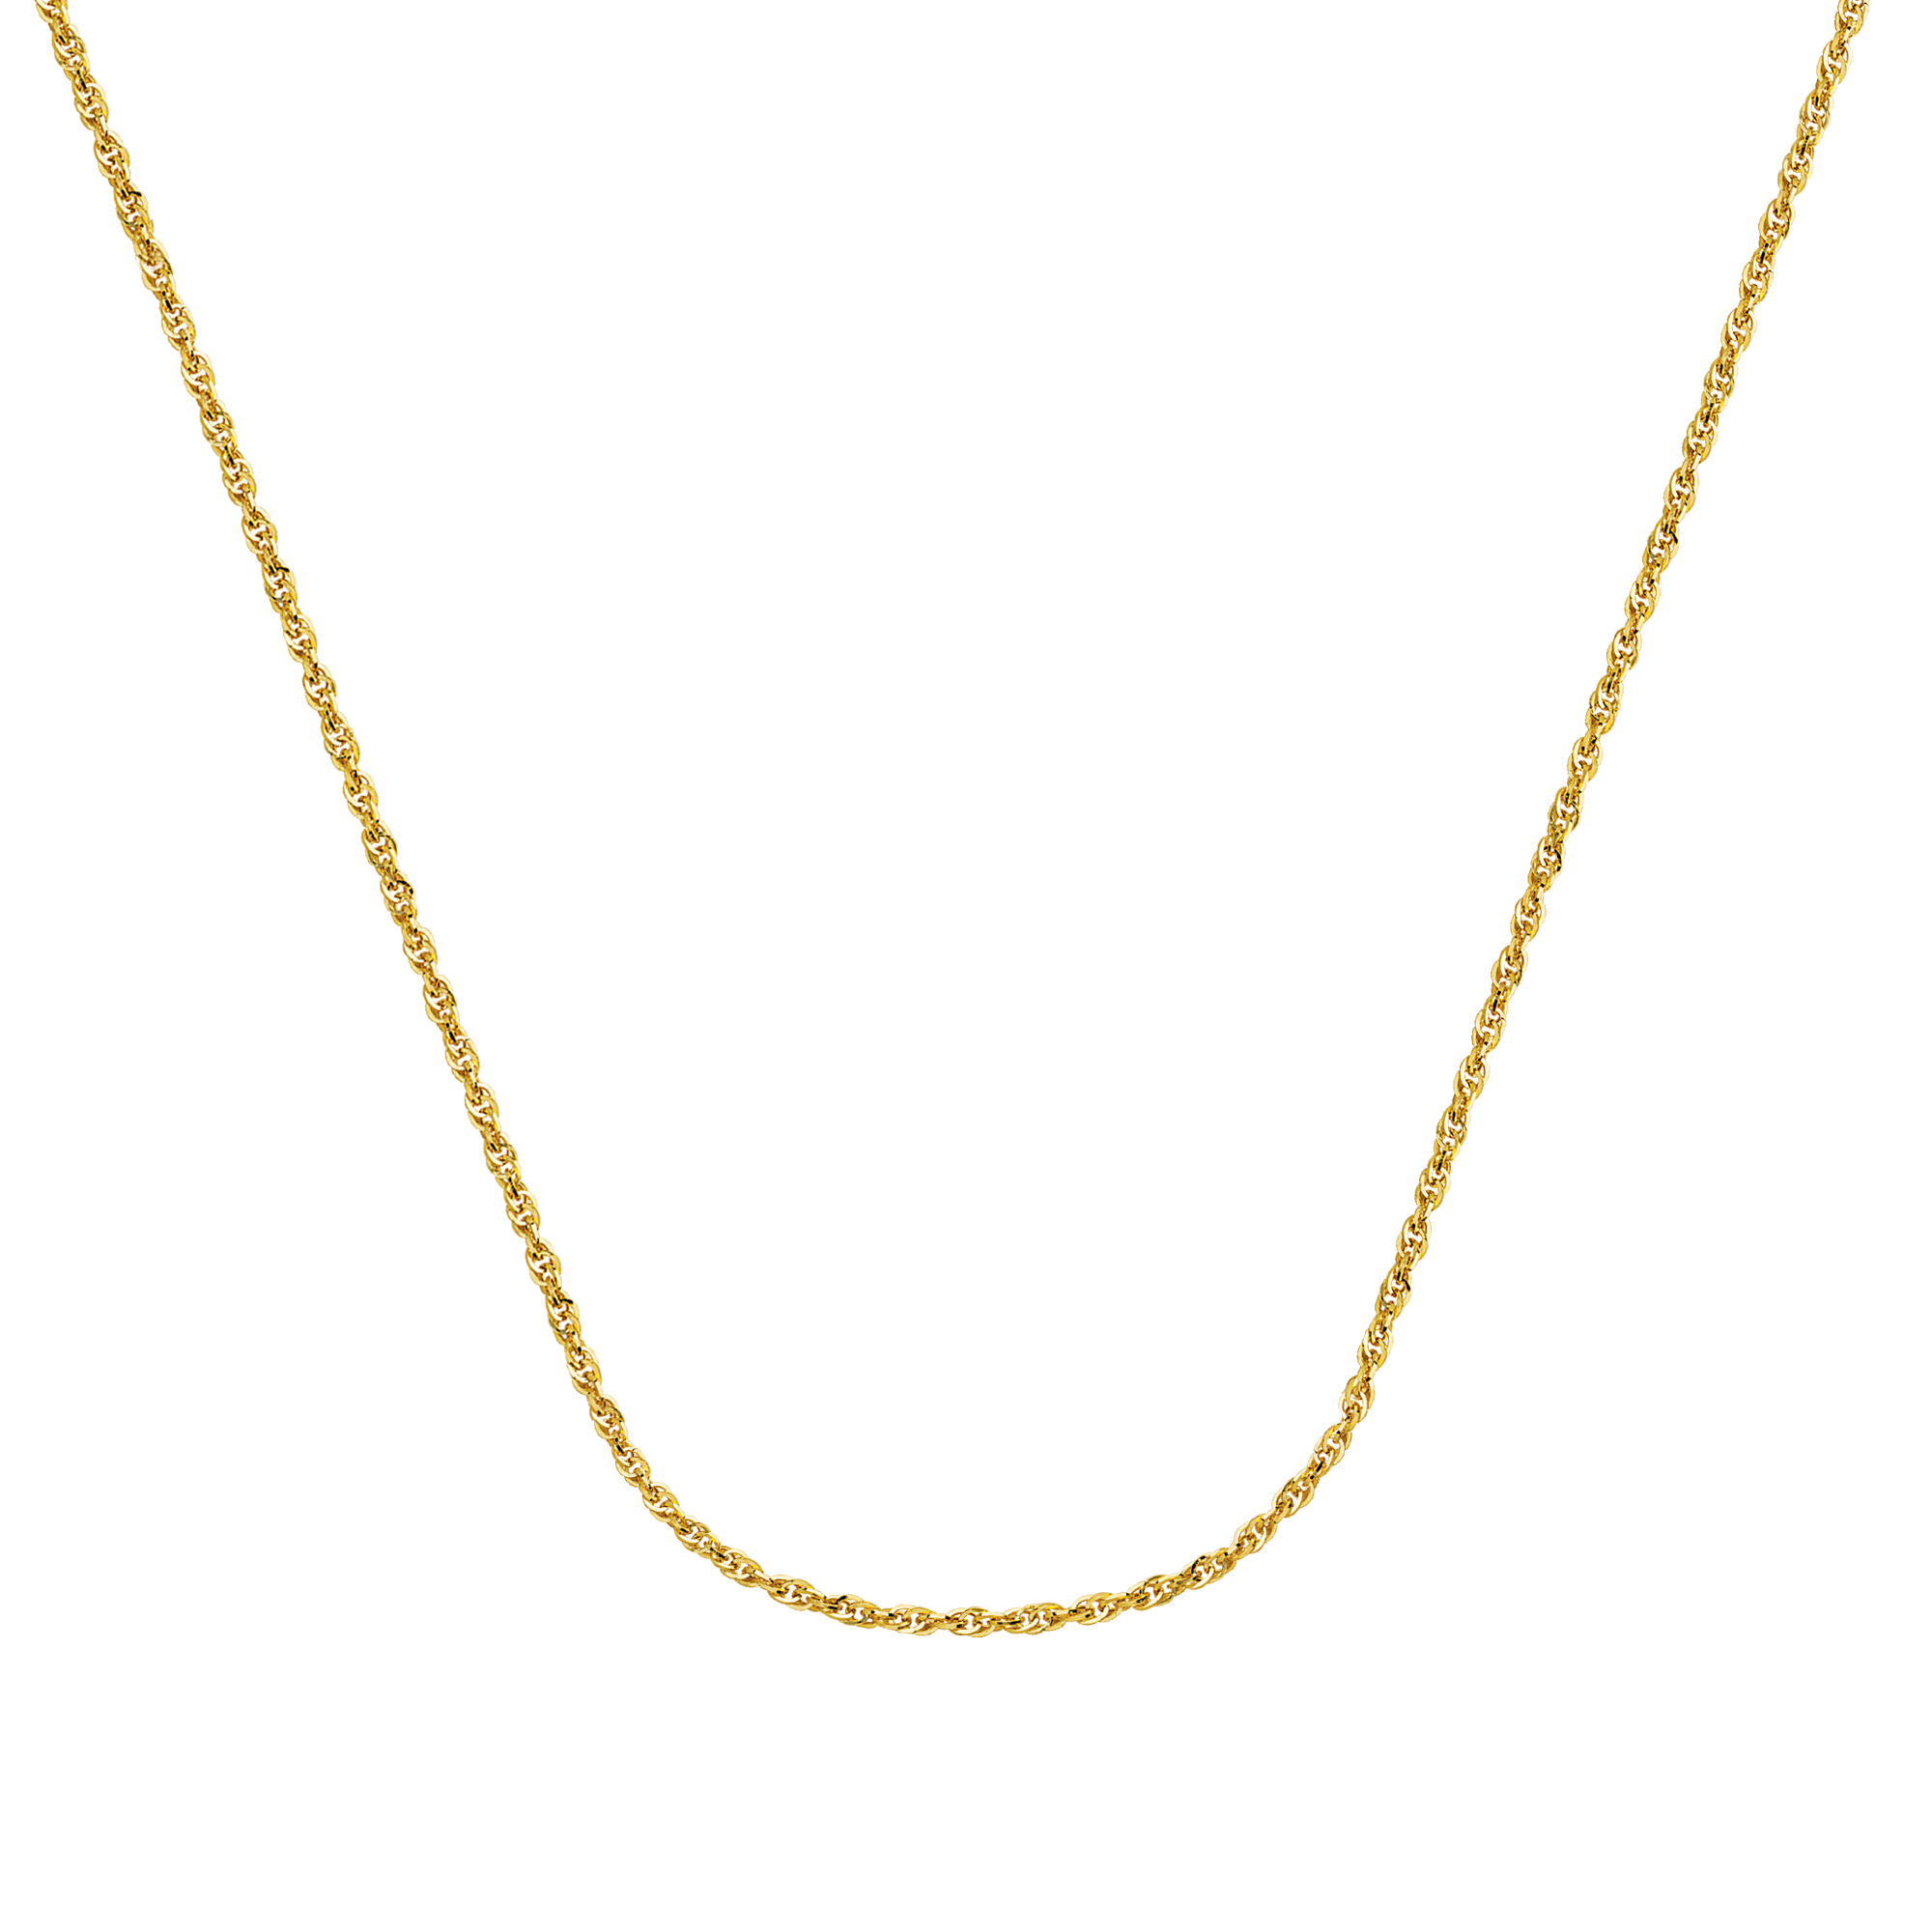 Rope Chain , 14Kt Gold Hollow Rope Chain With Lobster Lock / 20